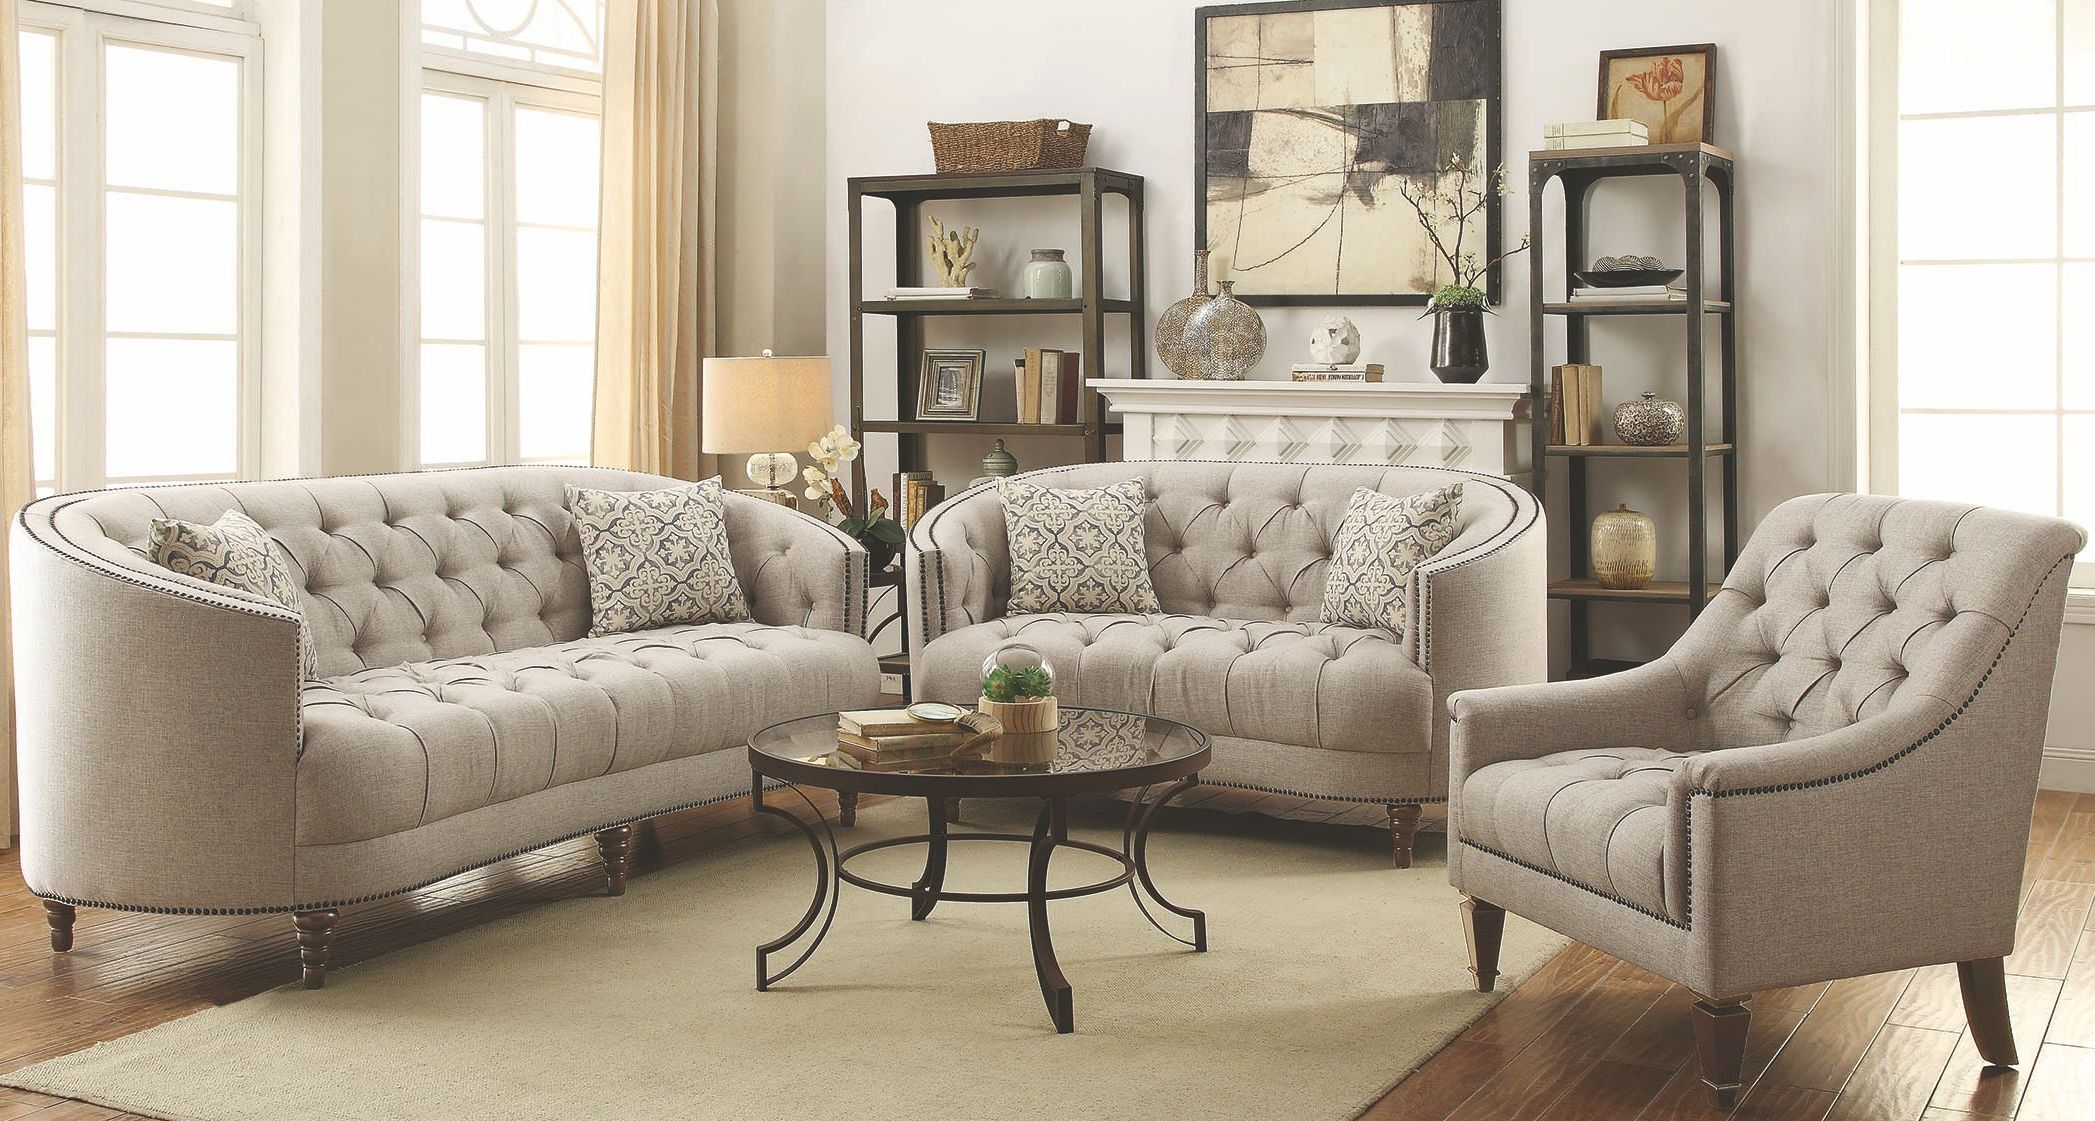 Avonlea Stone Grey Living Room Set